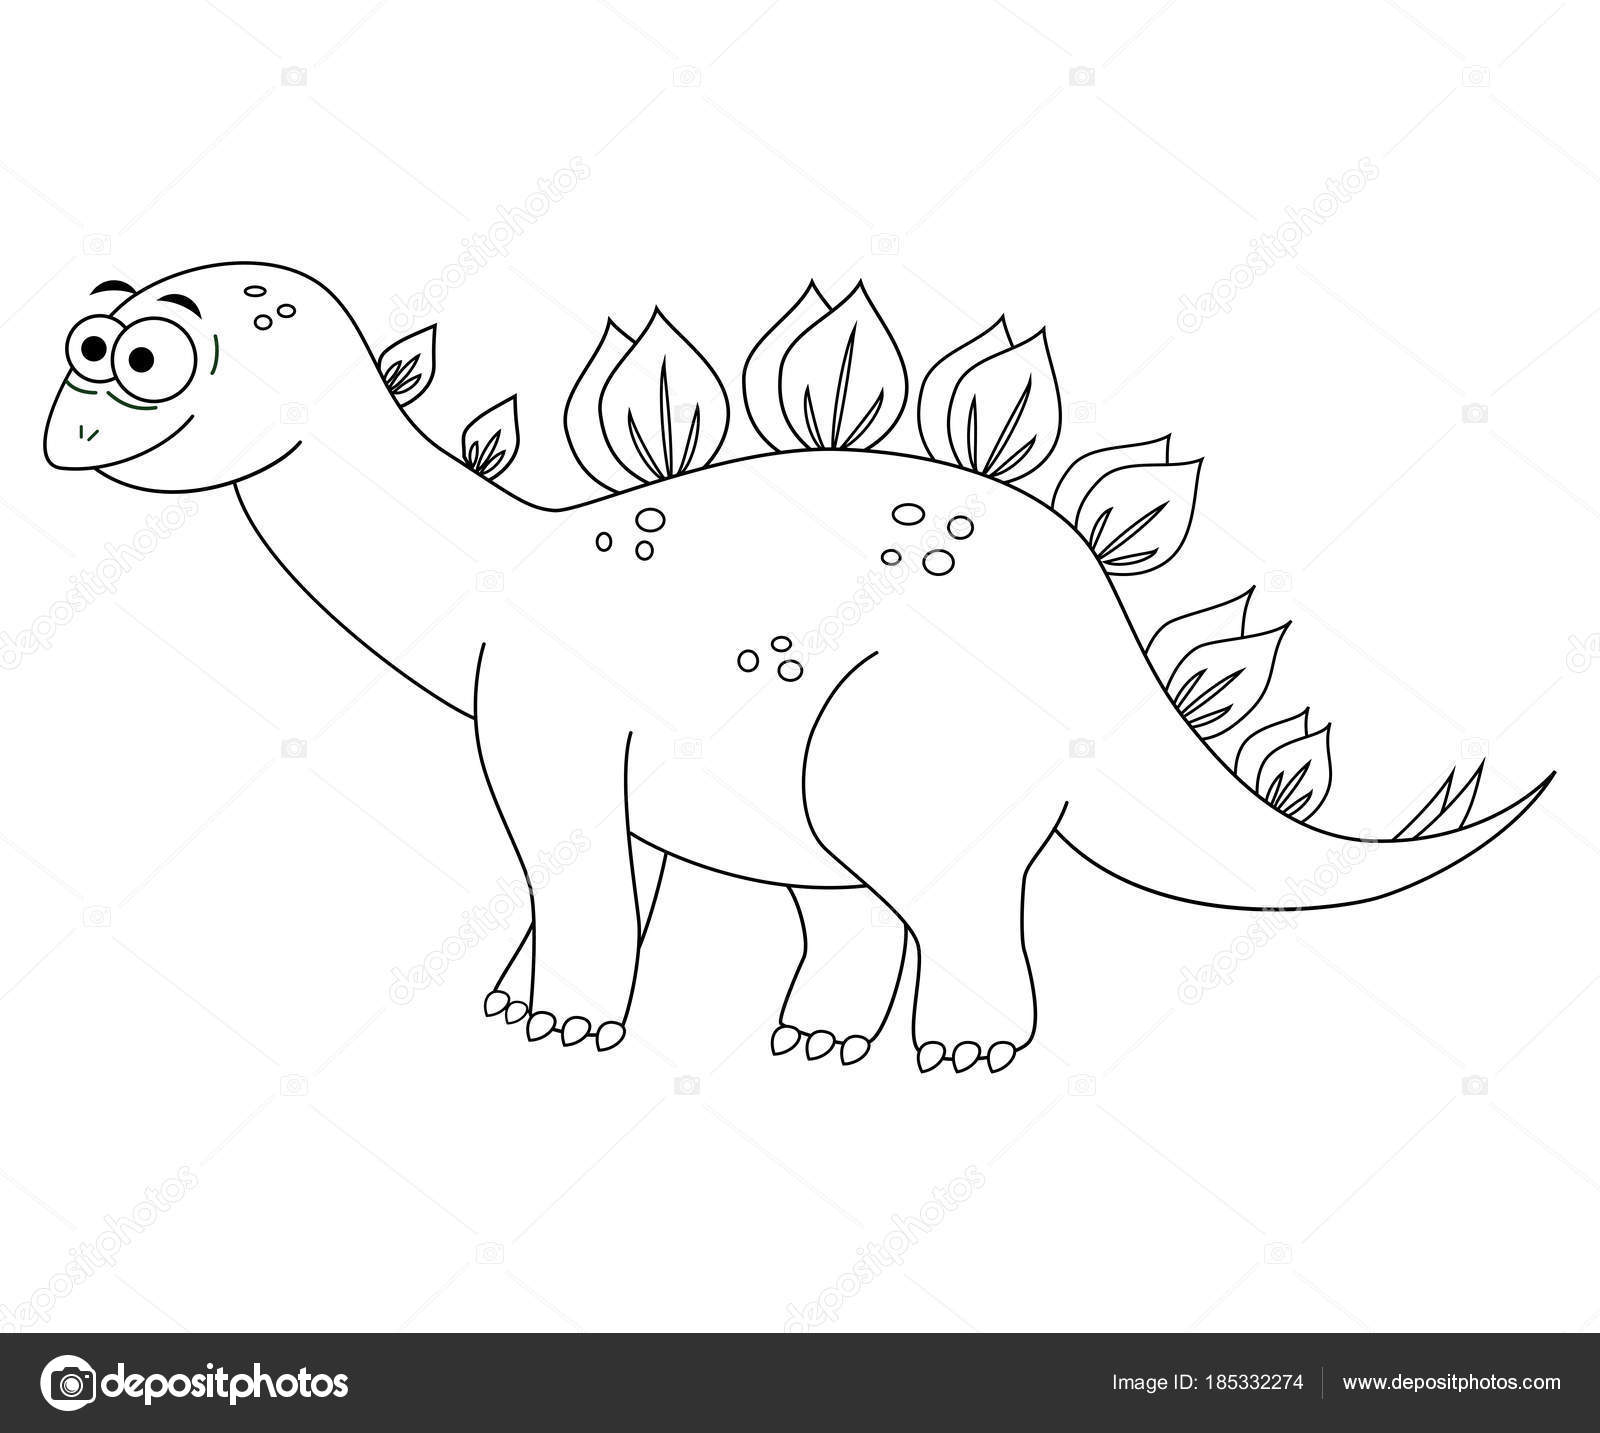 Colorles lustige Cartoon Stegosaurus. Vektor-Illustration. Colorin ...